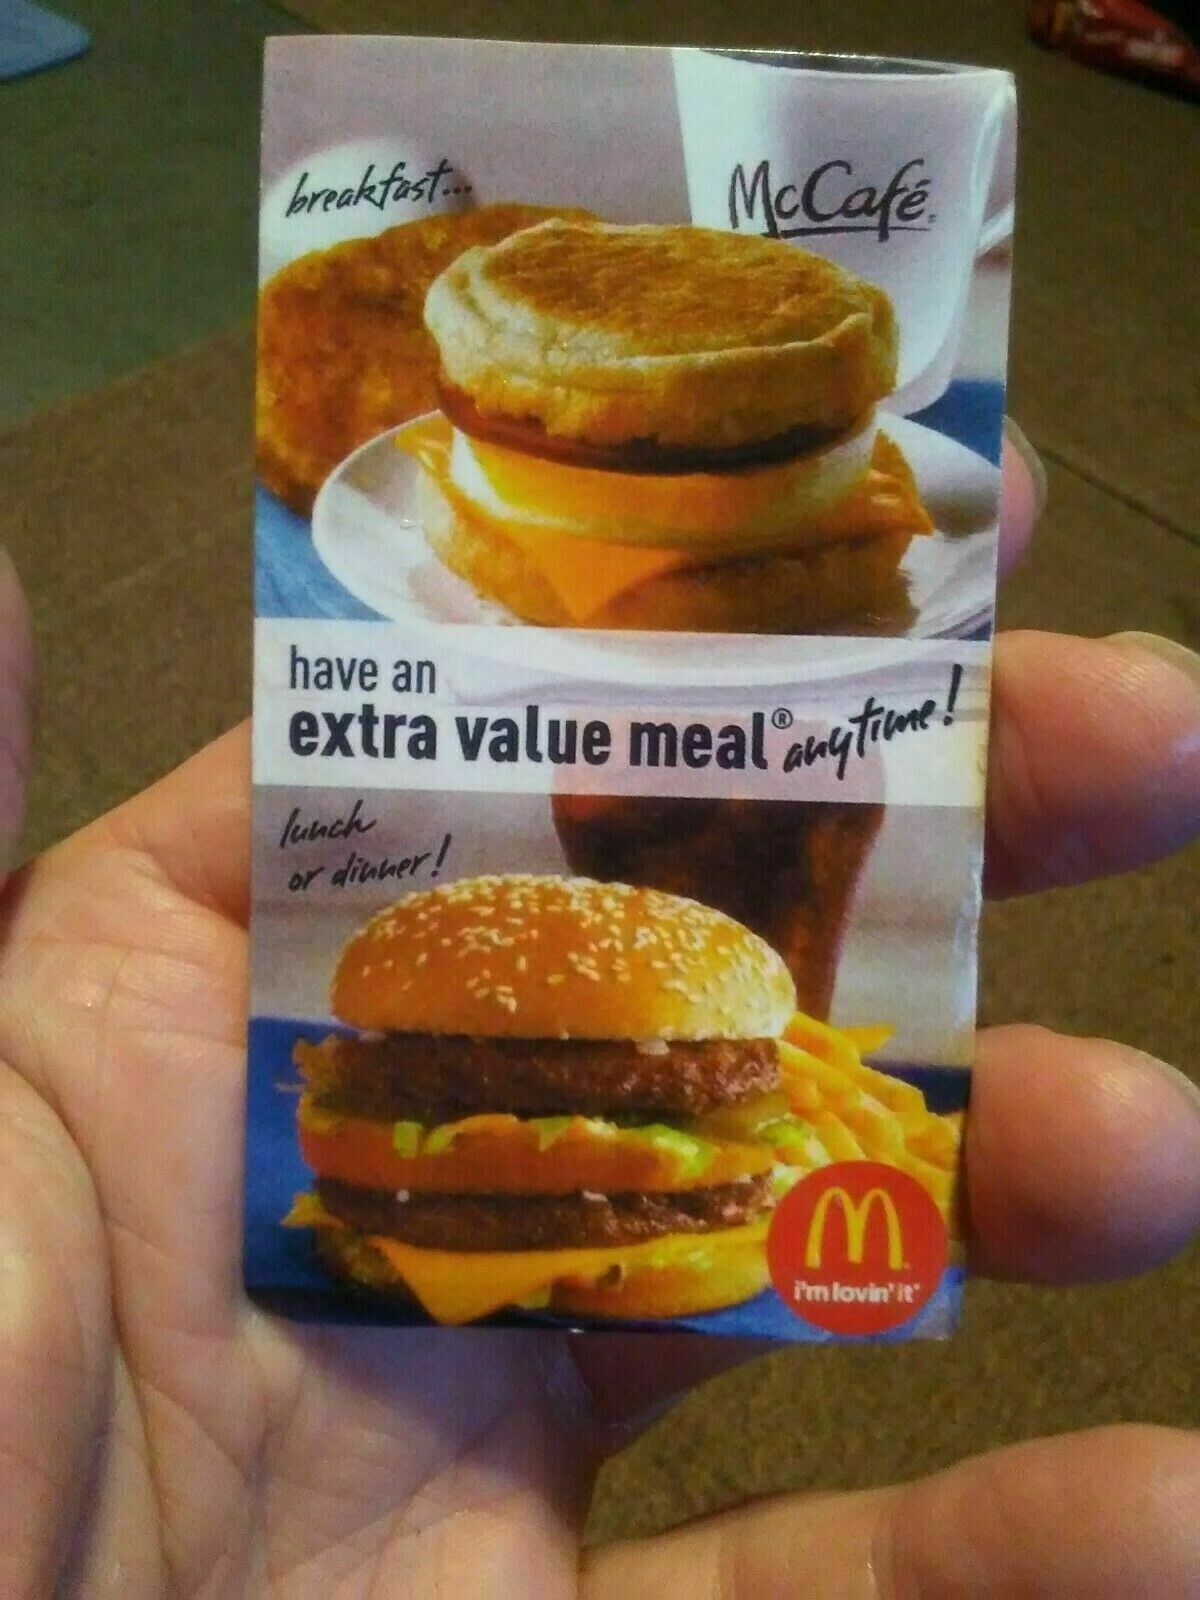 Lot Of 10 McDonalds Combo Meal Card Voucher Certificates -Value Of 70-100.  - $18.00